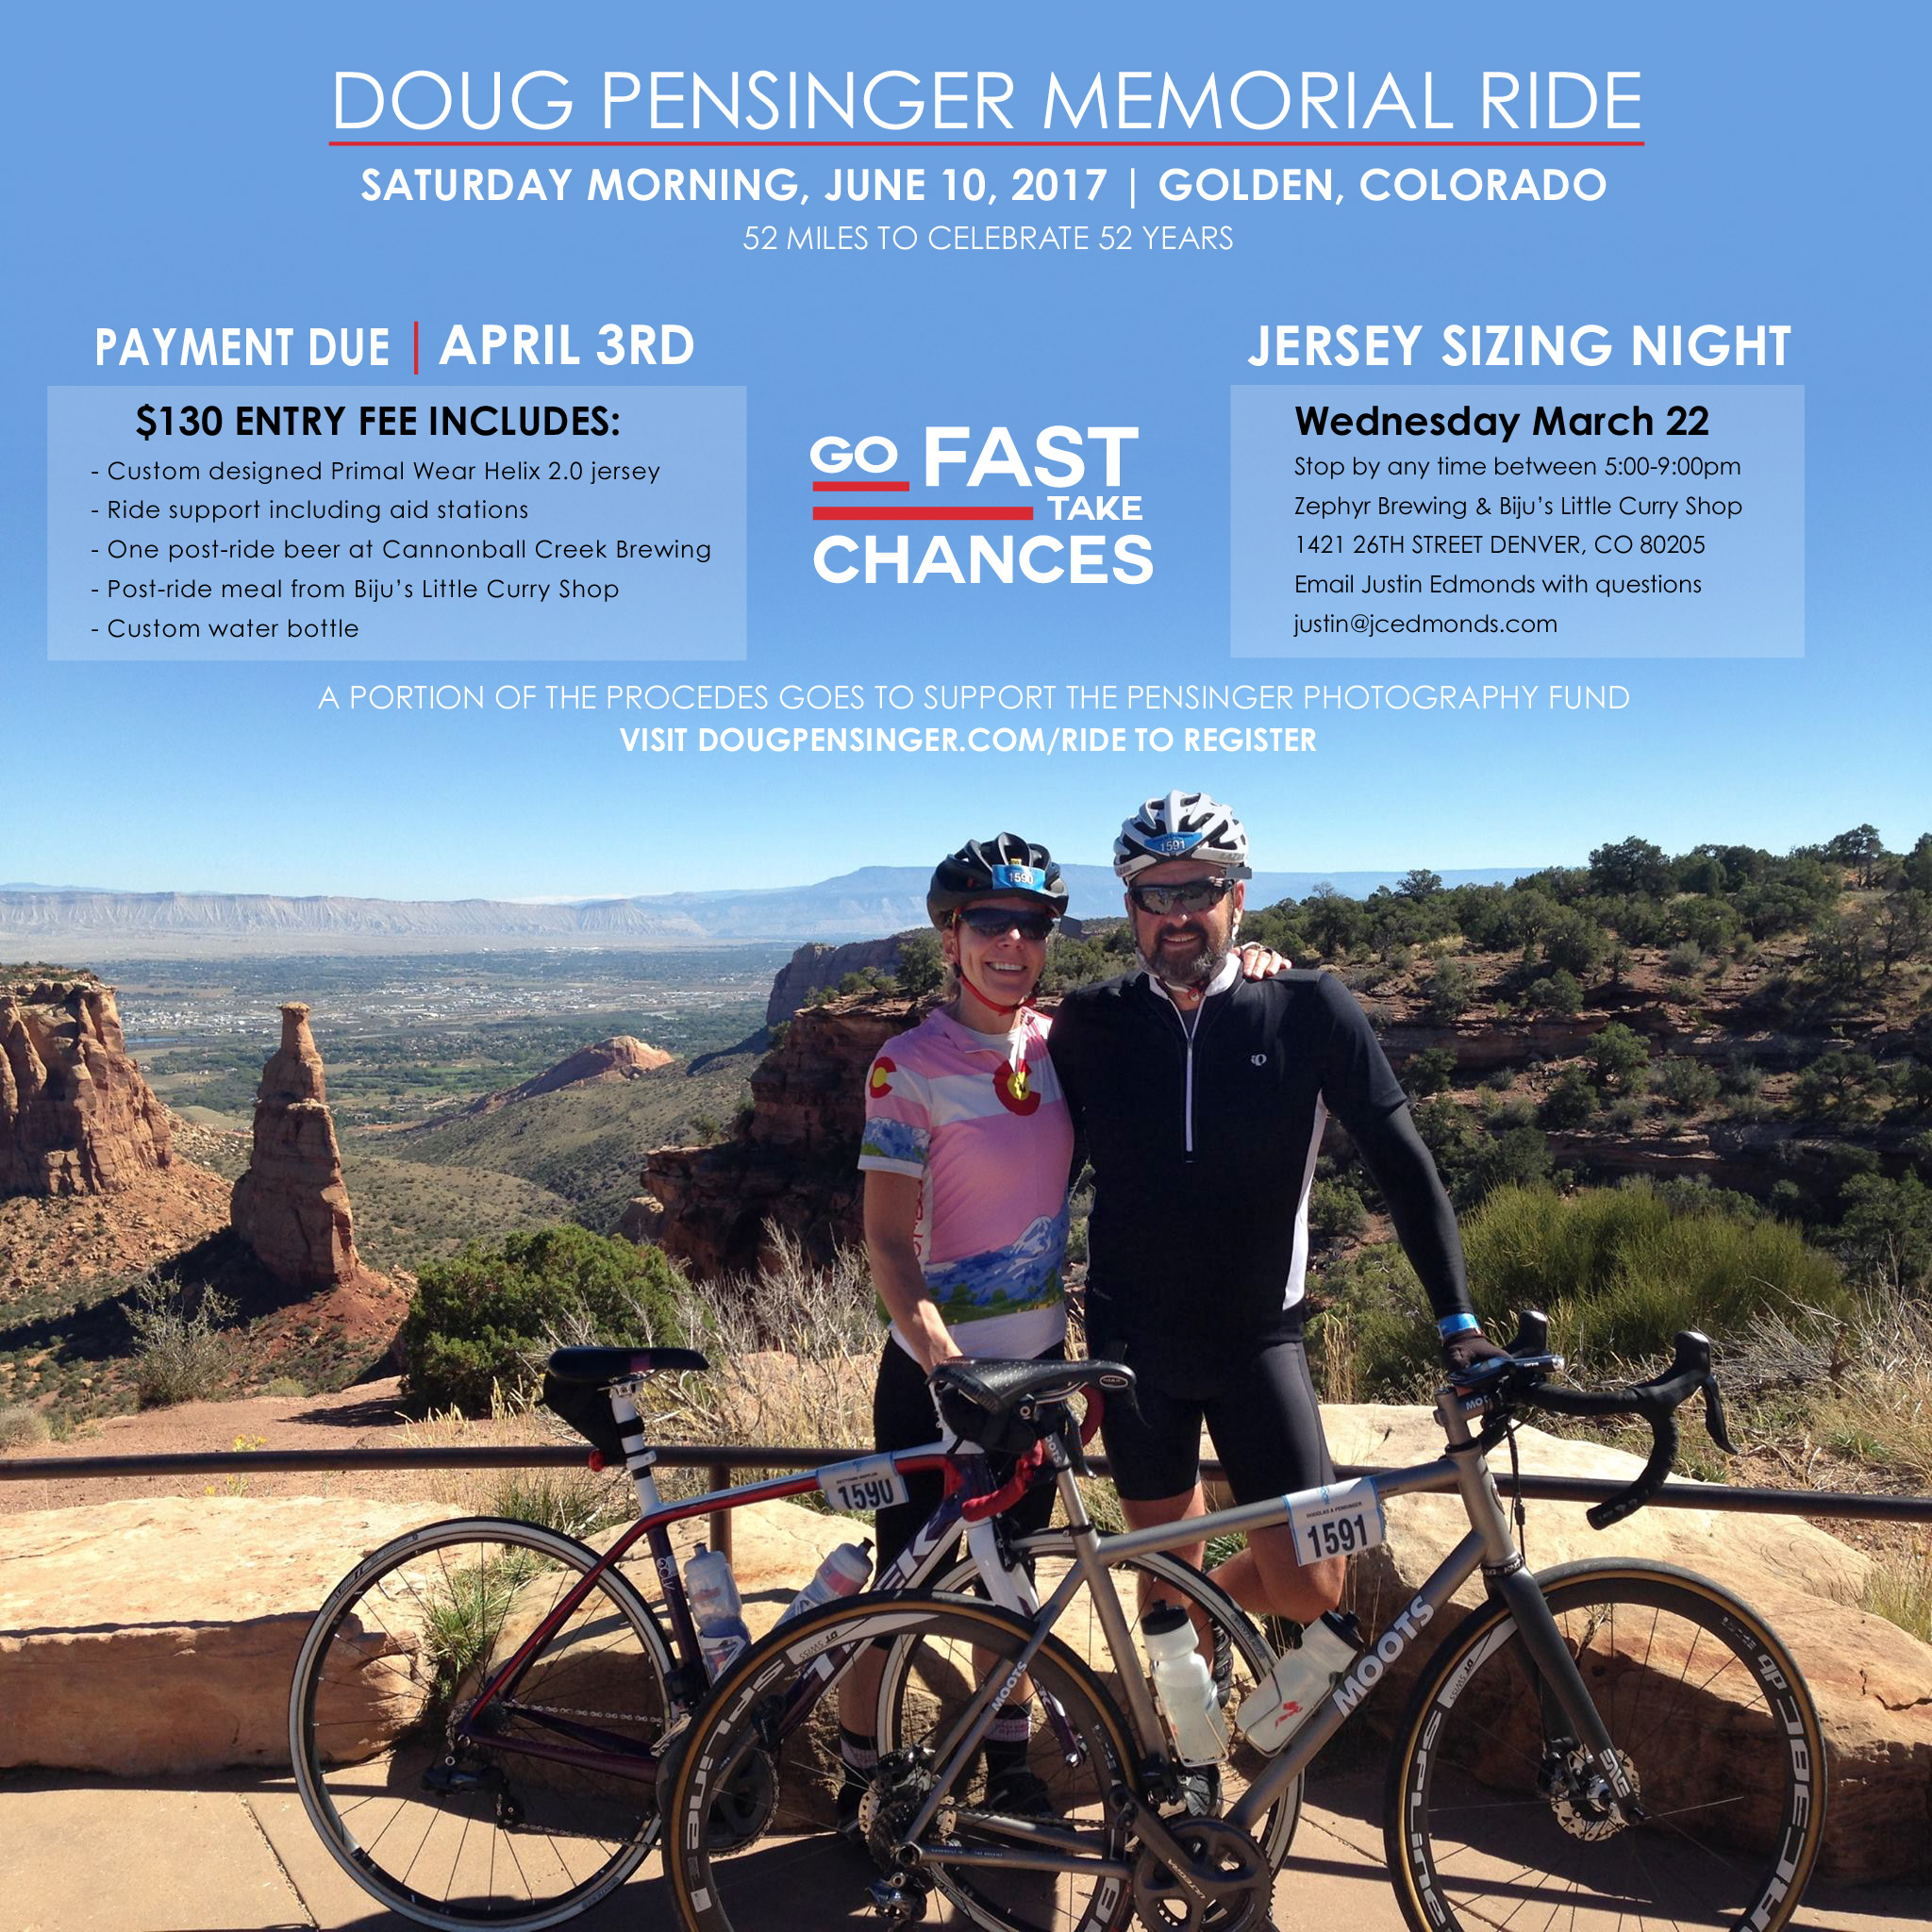 Information for the Doug Pensinger Memorial road cycling ride in Golden, Colorado on June 10, 2017